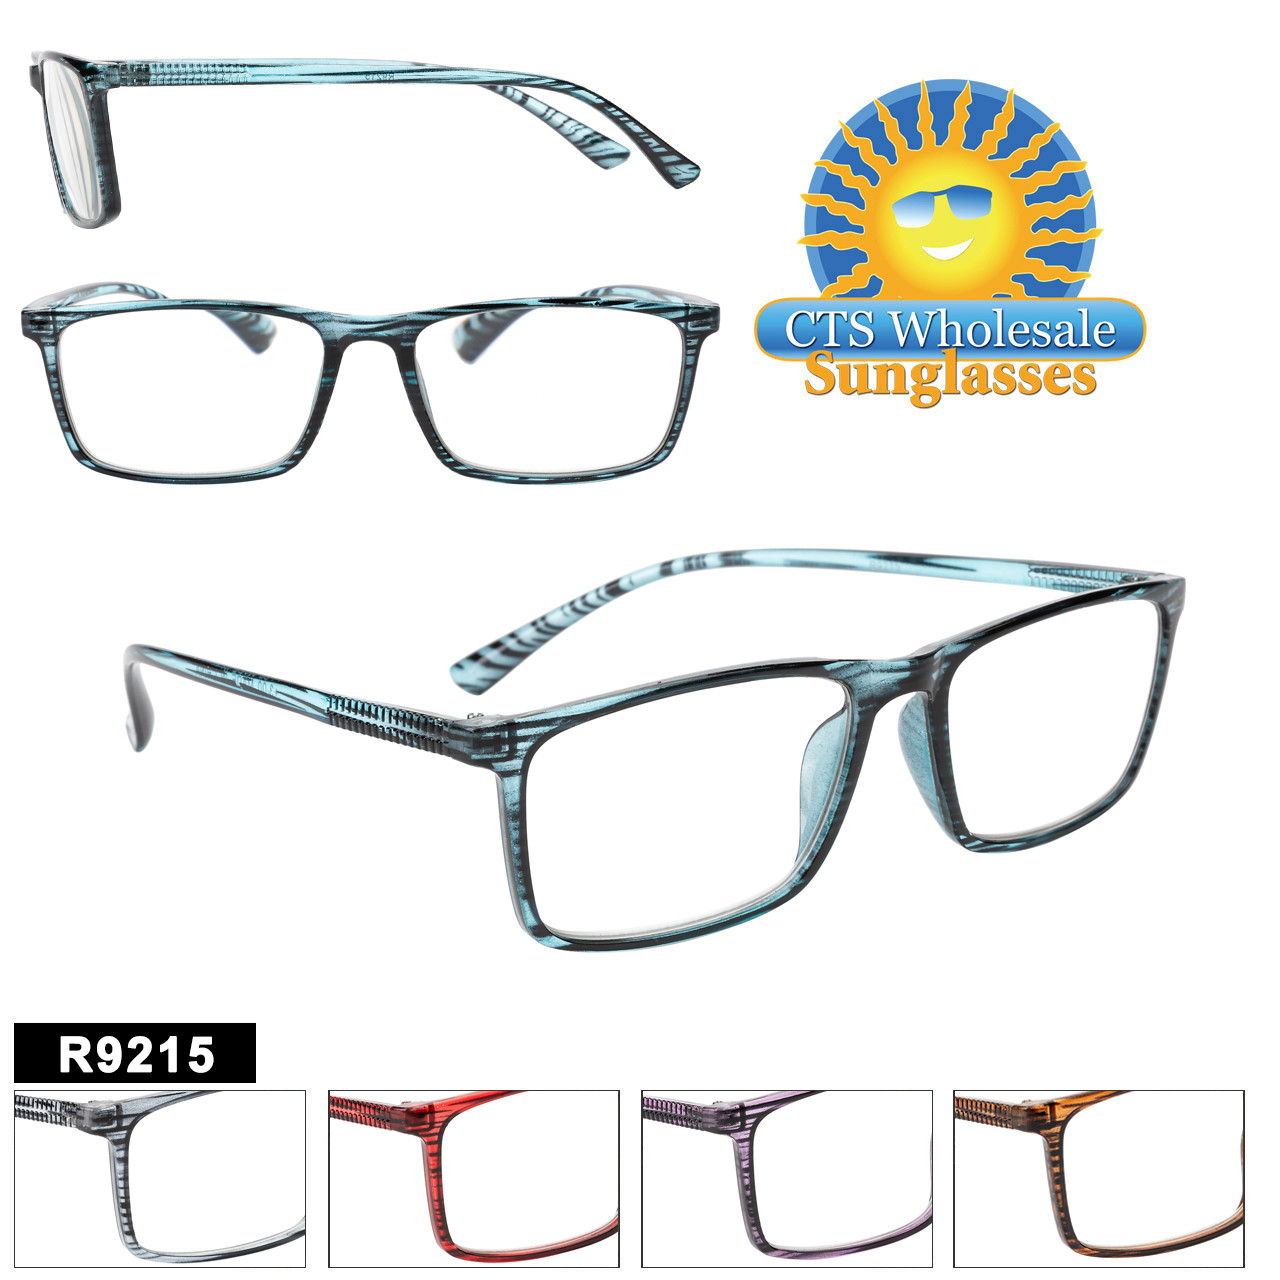 Great Larger plastic framed Readers in a Classic style.  5 Colors to choose from and a variety of powers.